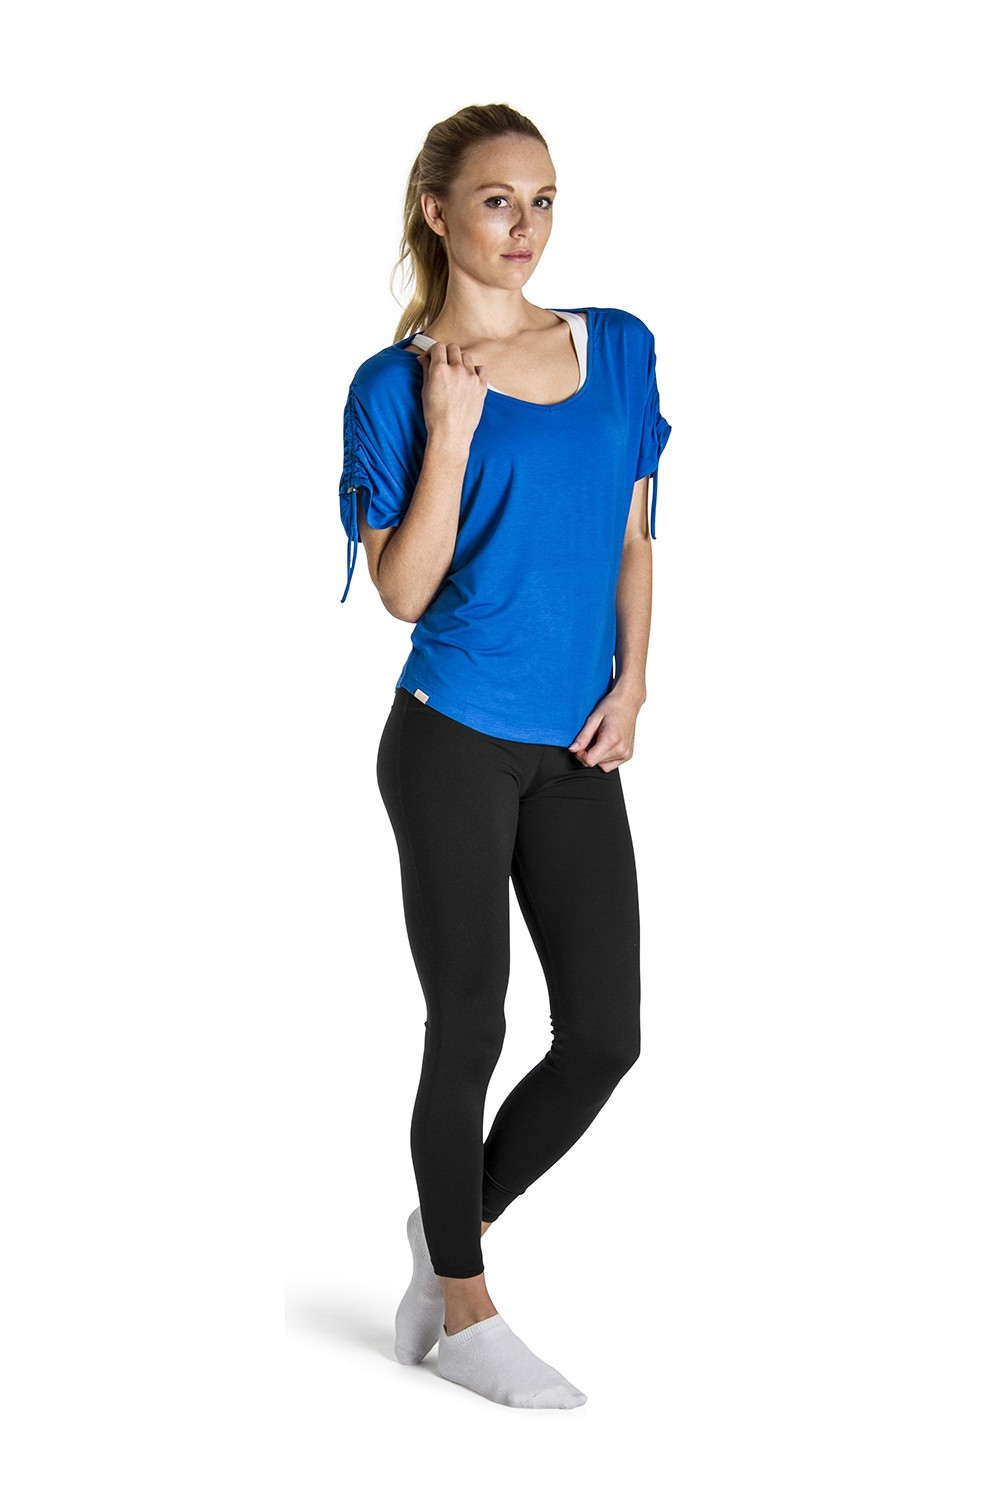 Rouched Sleeved Top Women's Tops